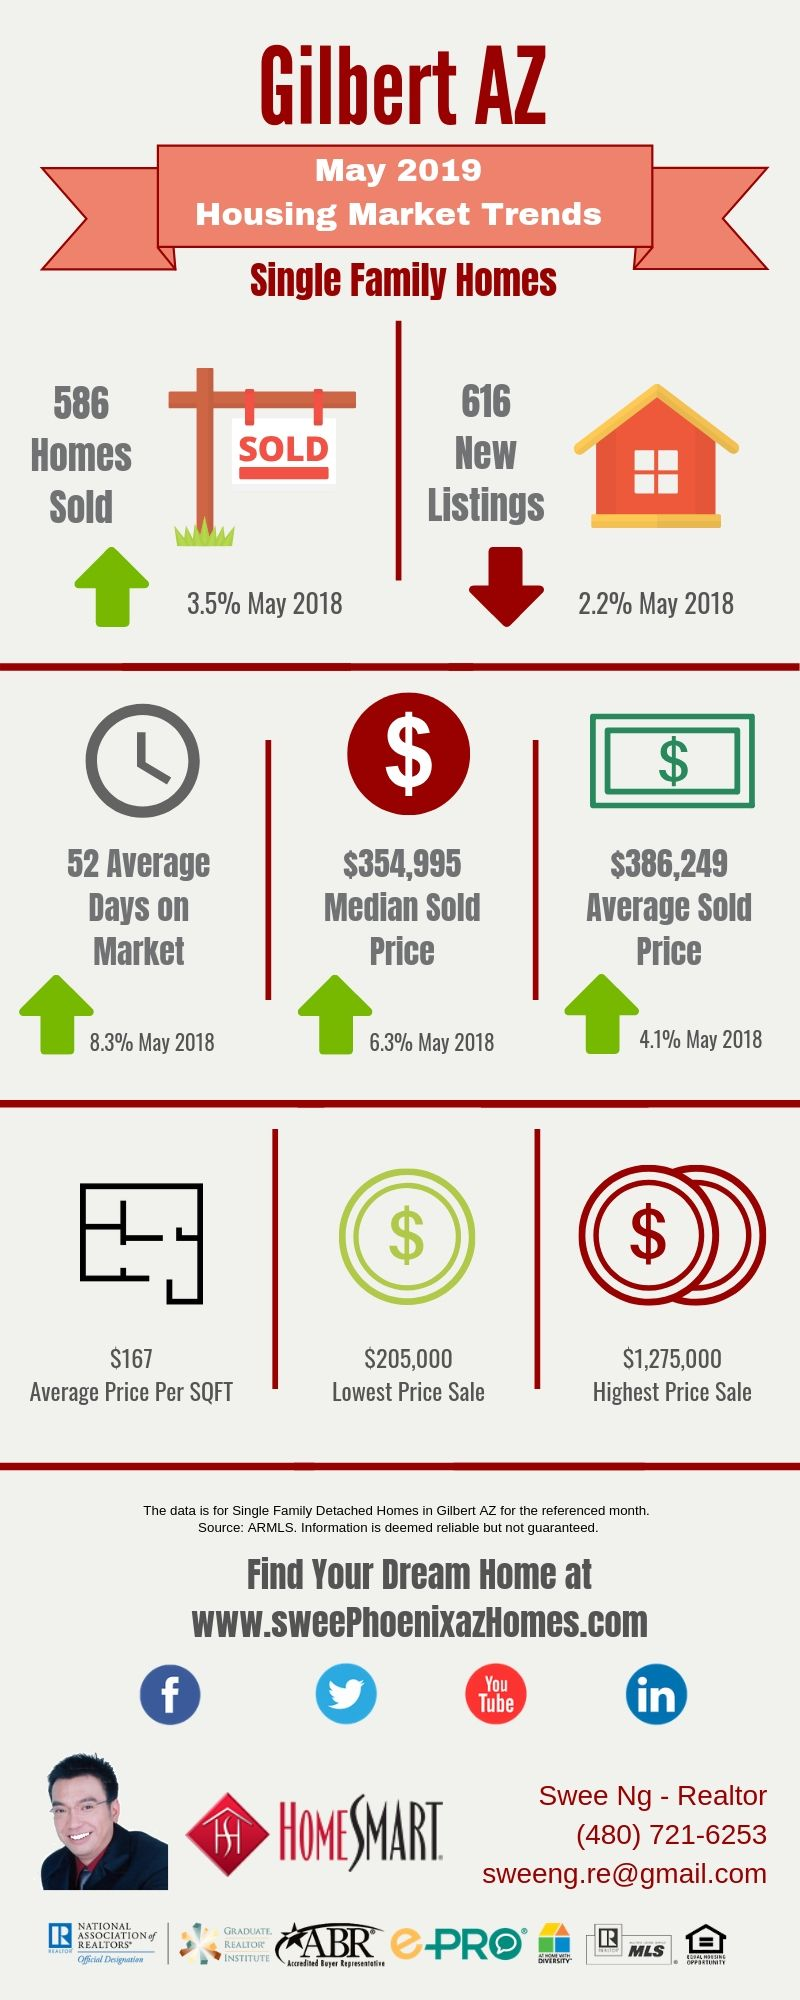 Gilbert AZ Housing Market Trends Report May 2019 by Swee Ng, Real Estate and House Value